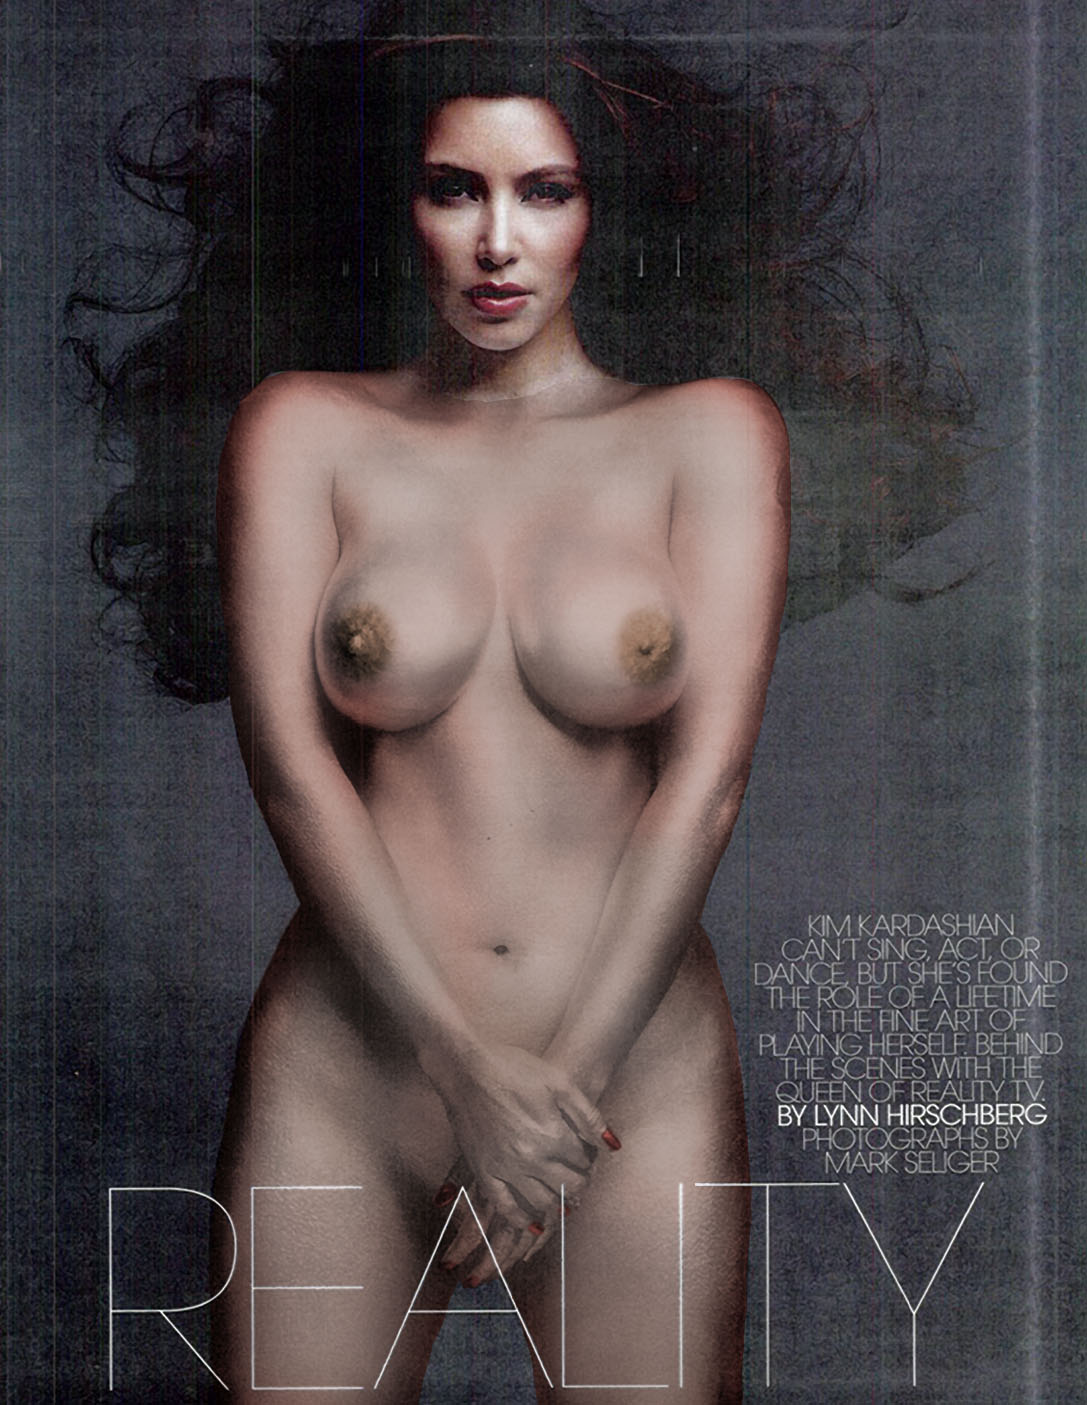 Kim kardashian sexy playboy photo shoot